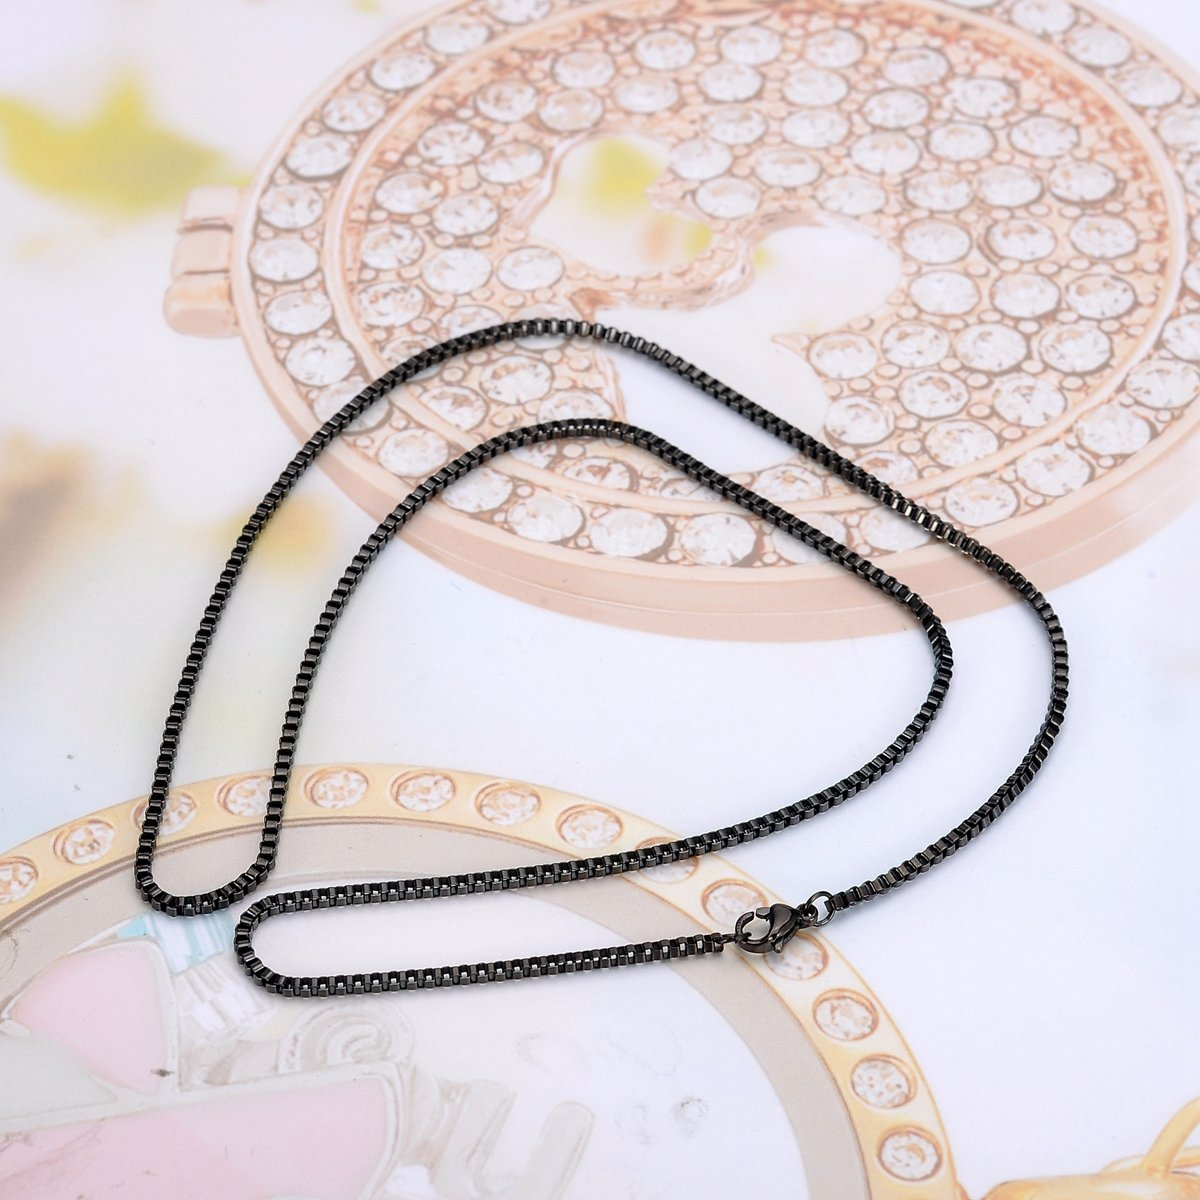 HooAMI Black Stainless Steel 2mm Box Chain Necklace For Unisex 22 Inches